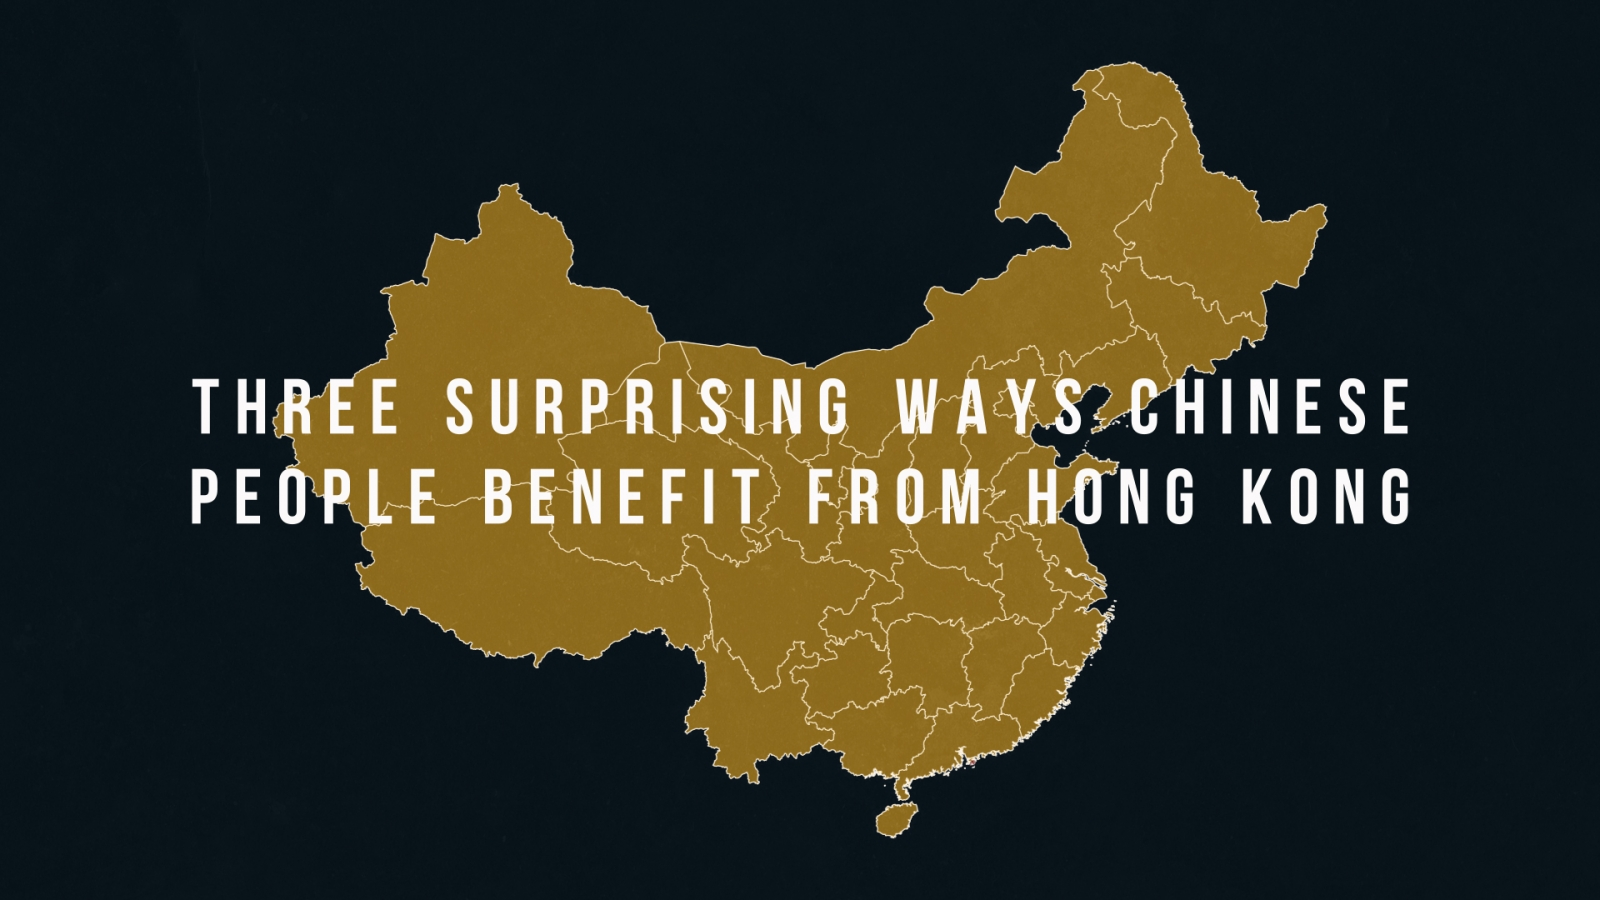 three-surprising-ways-chinese-people-benefit-from-hong-kong